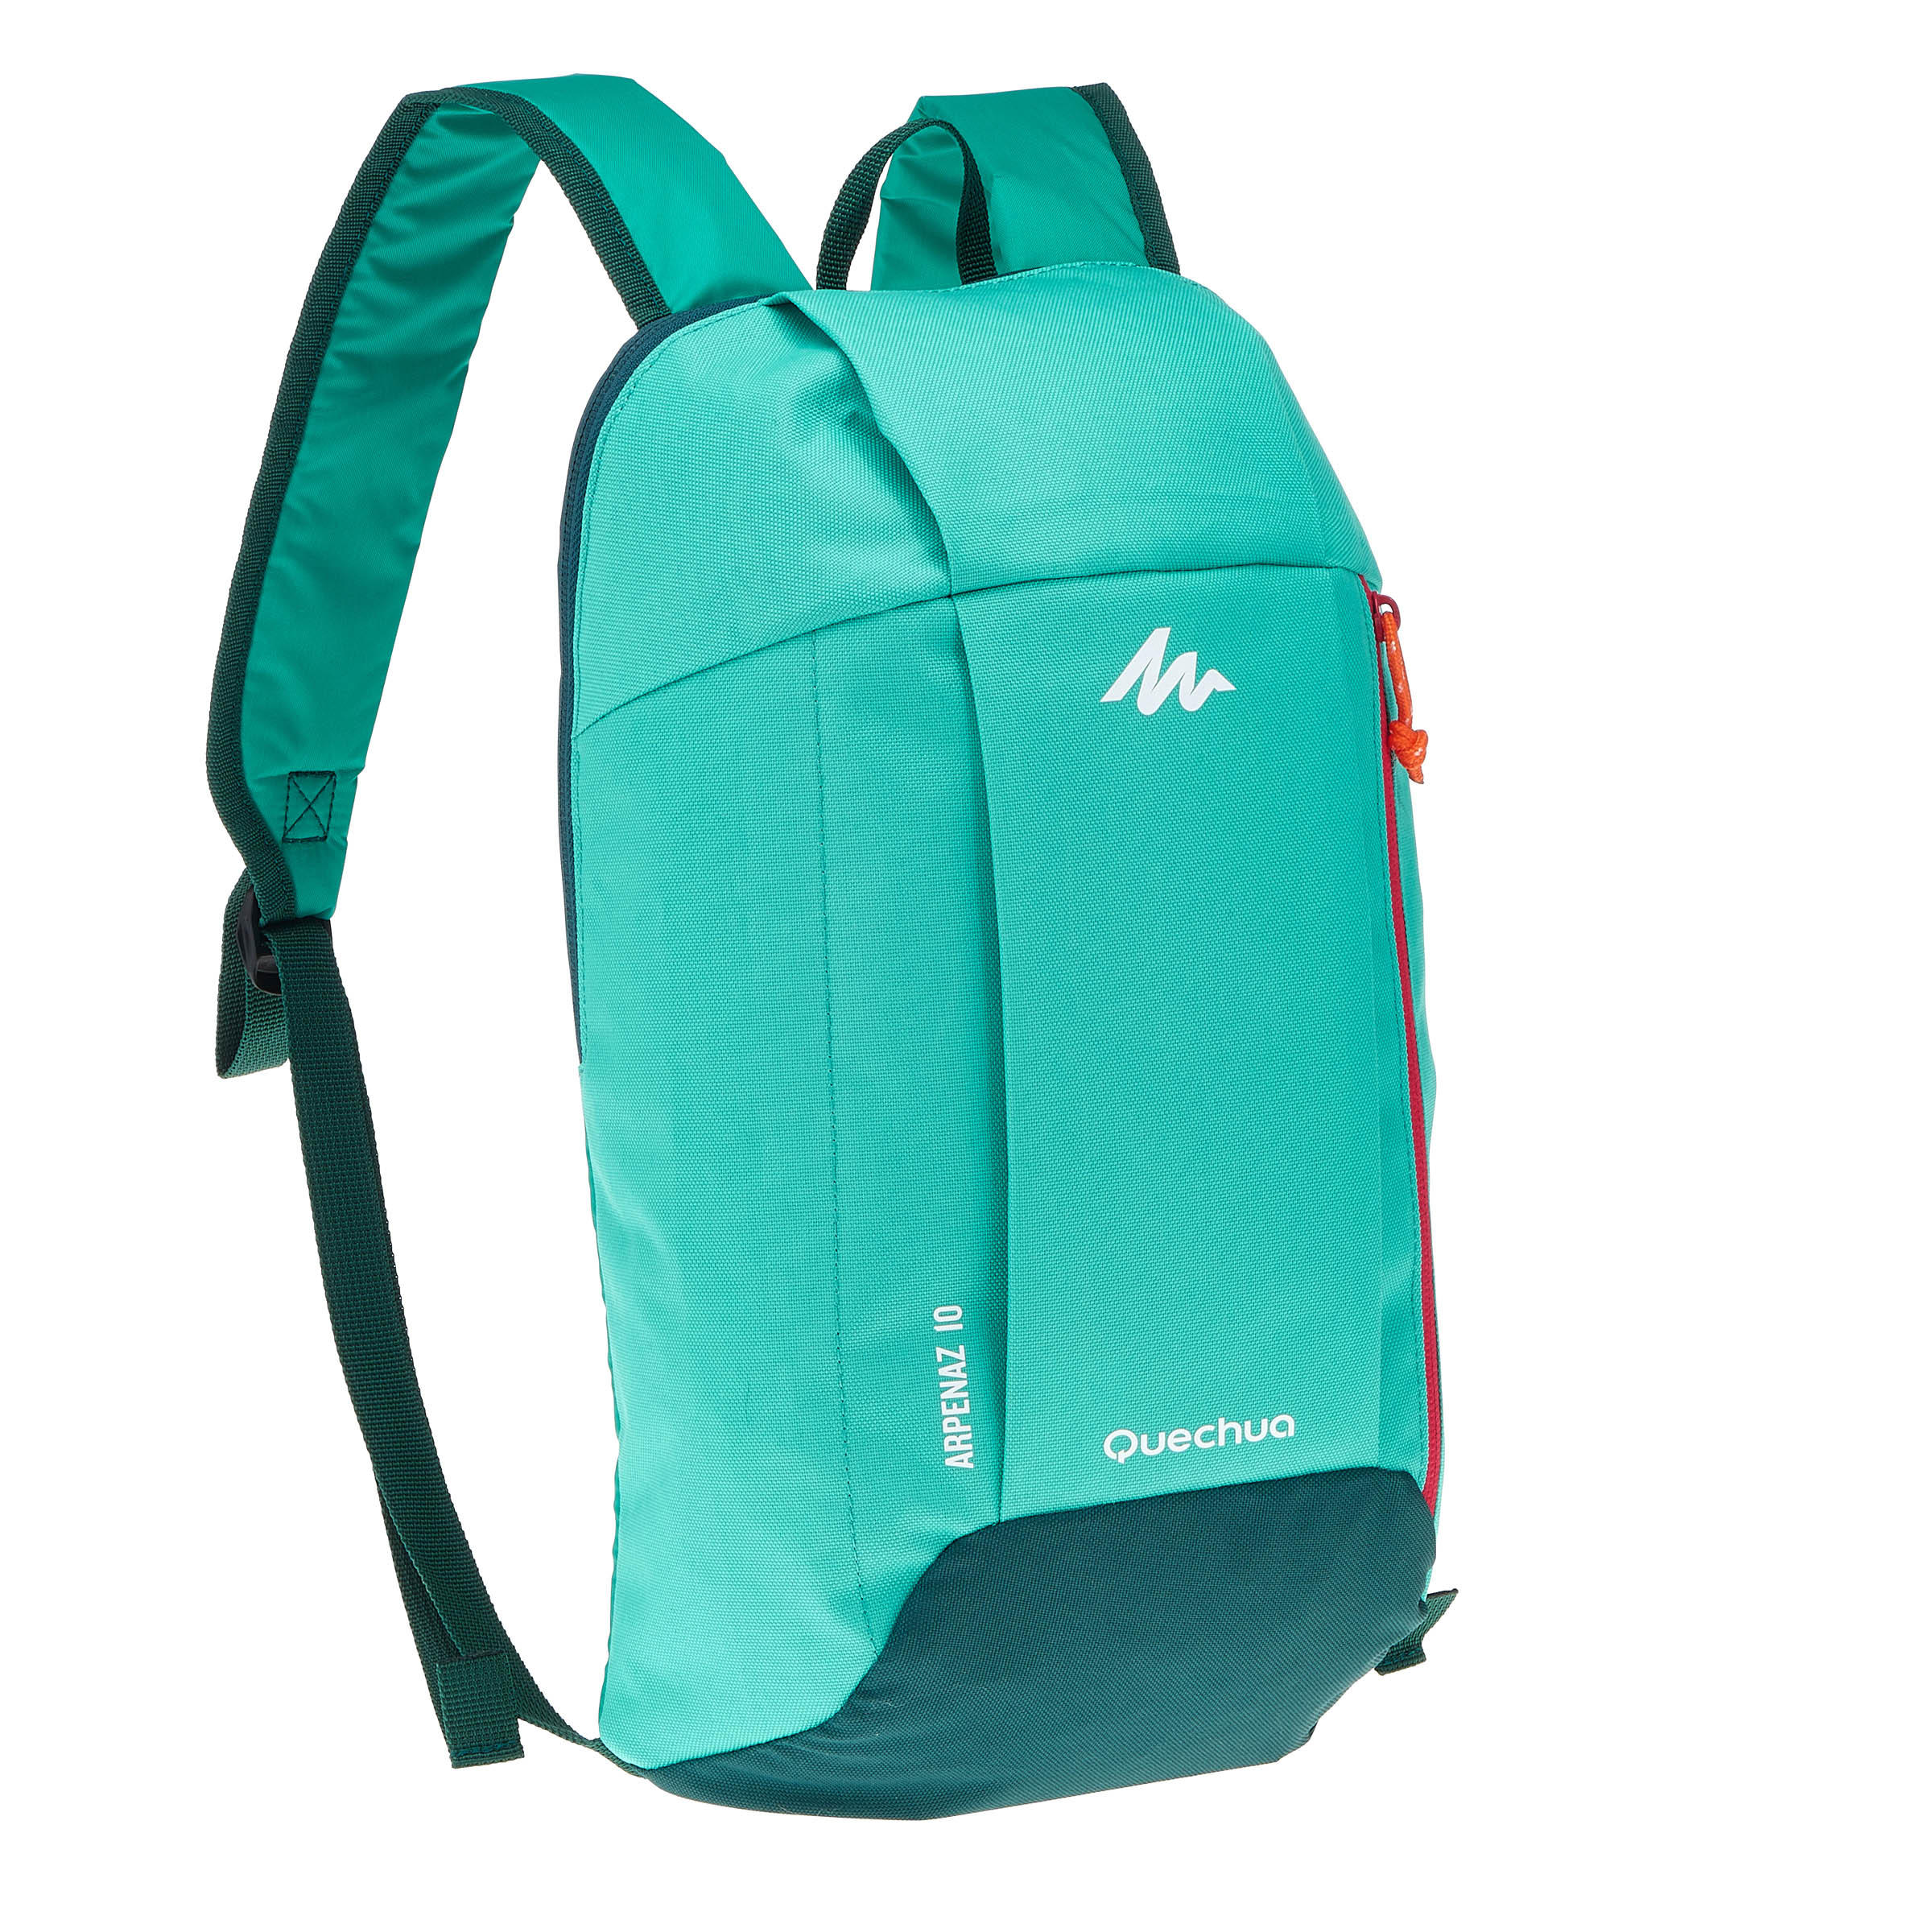 Arpenaz 10 L Day Hiking Backpack - Mint Green: Simple and light